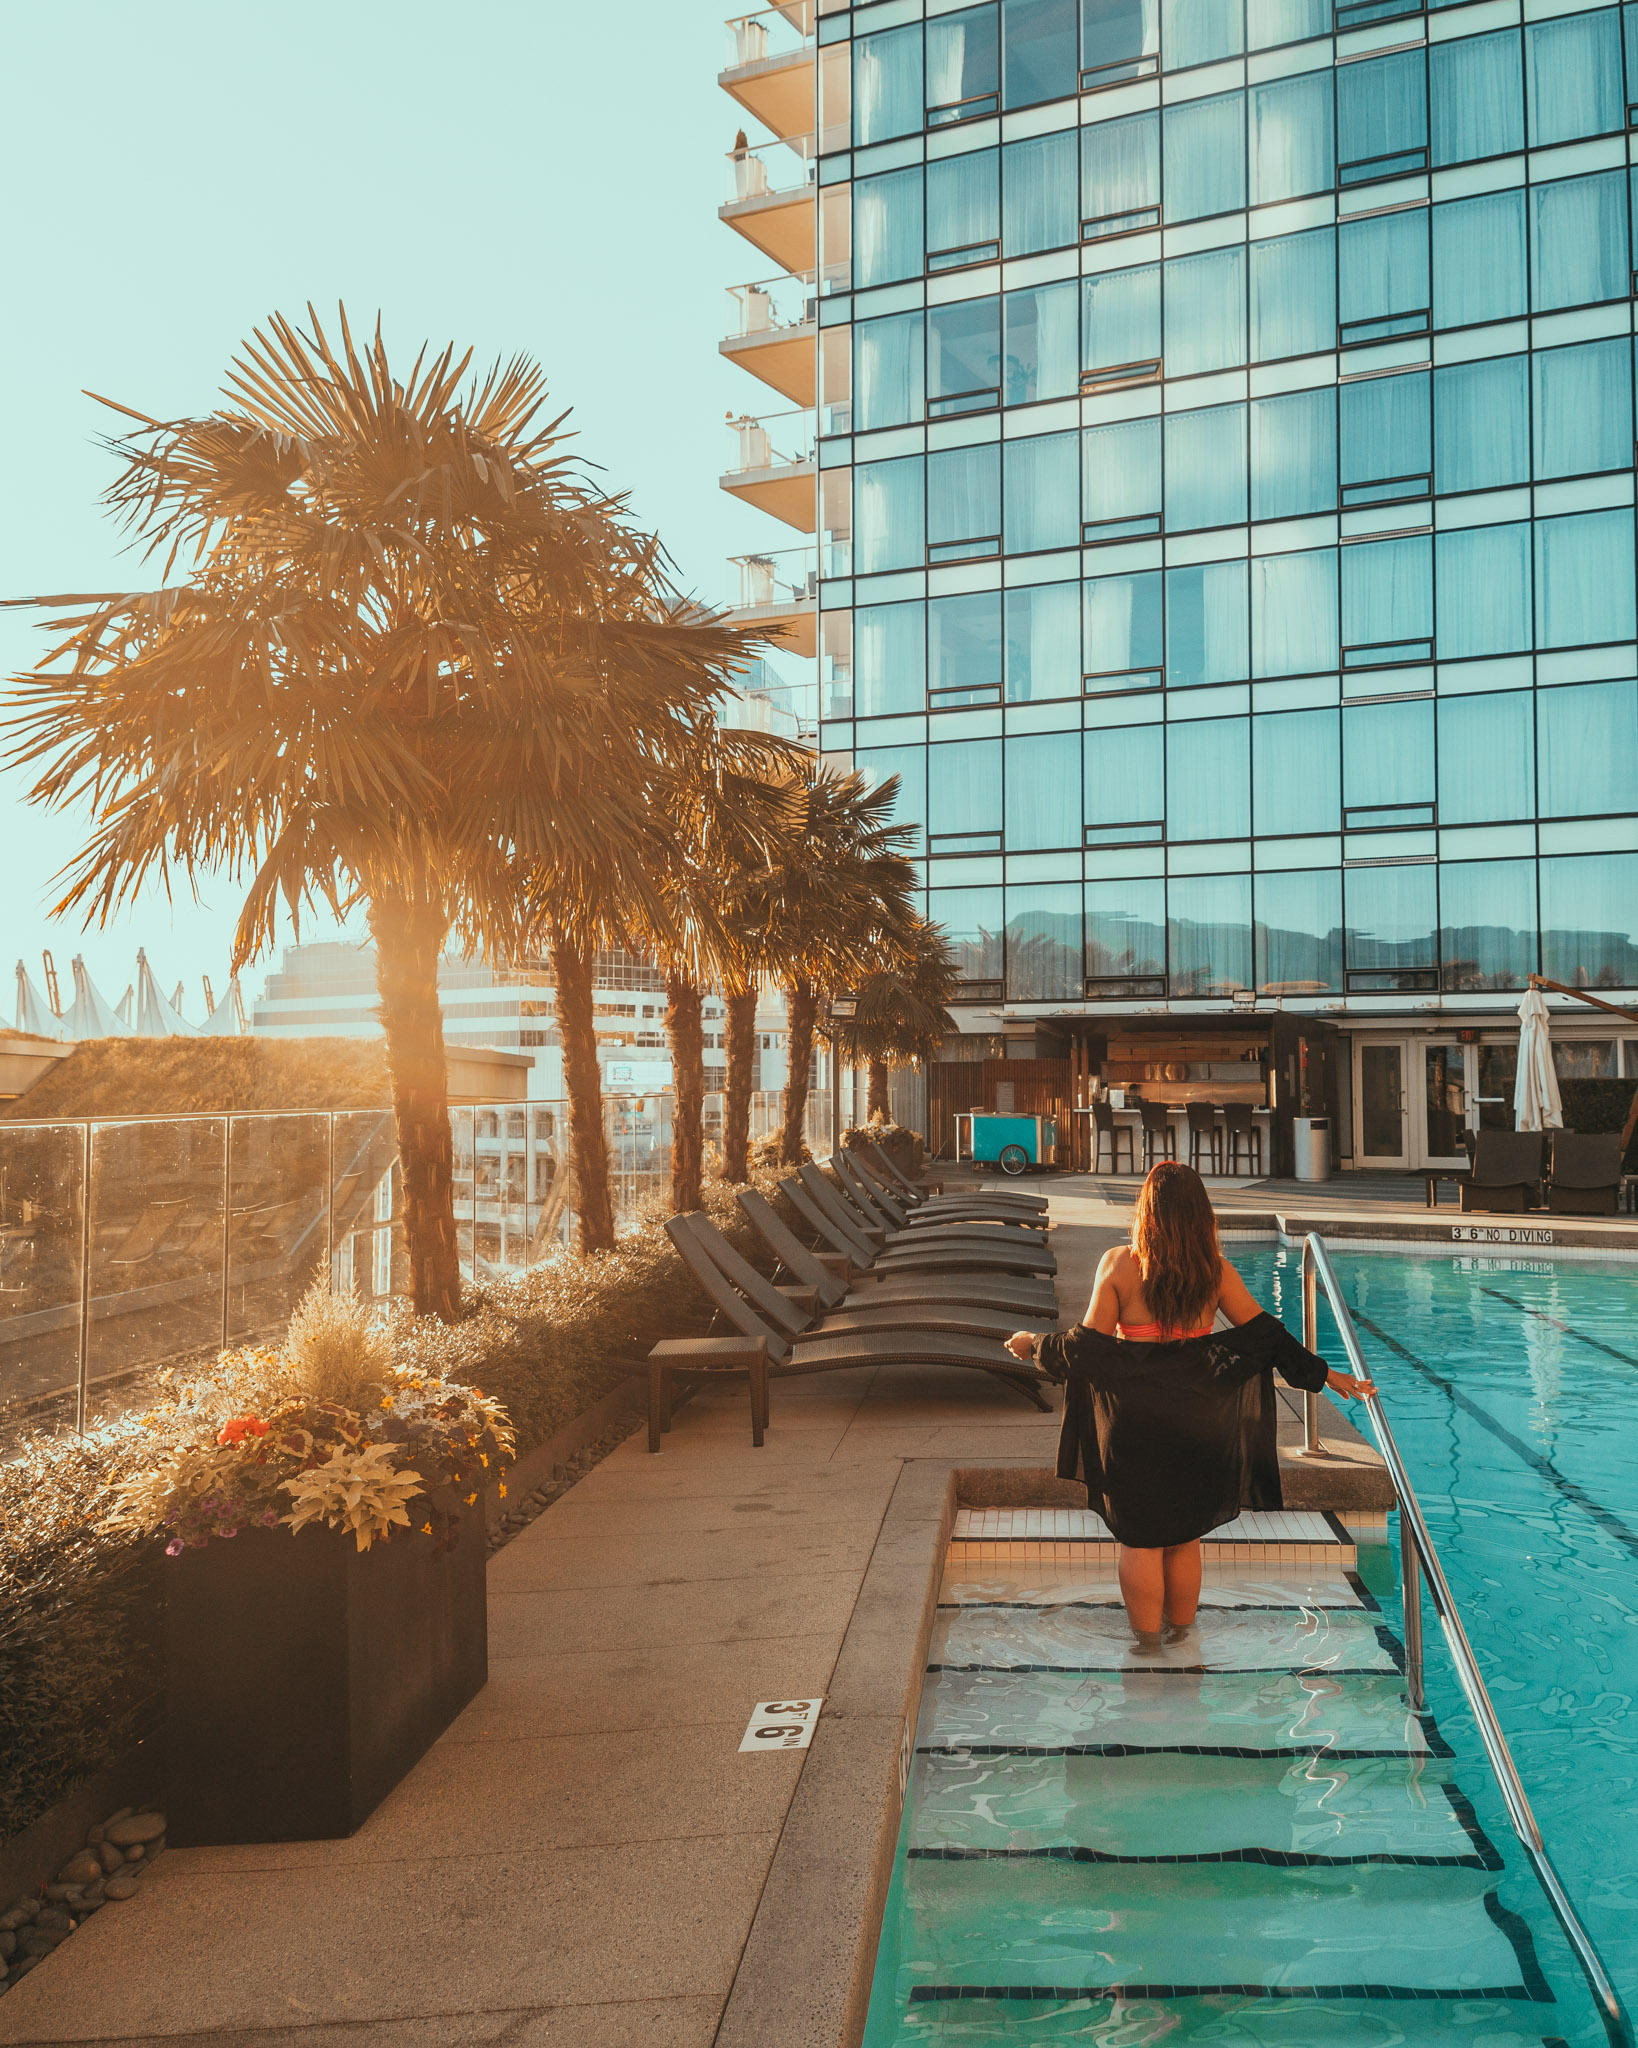 The outdoor pool at the Fairmont Pacific Rim // The Quick Guide to Visiting Vancouver, BC #readysetjetset